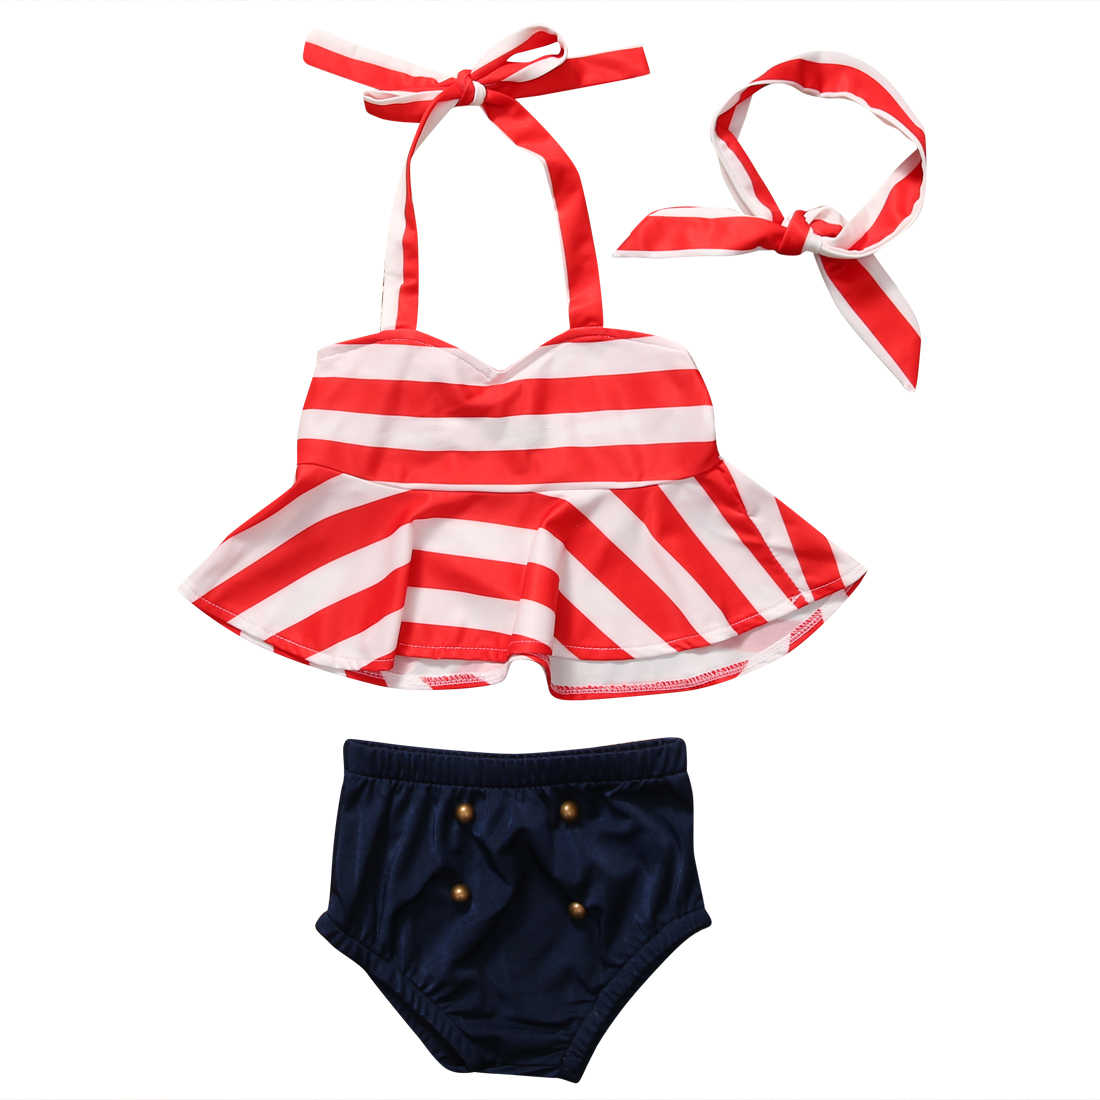 9d99c0a7738a2 ... Feedback Questions about Sumwme new cute Toddler Kids Baby Girl halter striped  ruffles Tankini 3pcs Bikini set Swimwear Swimsuit Bathing Suit Beachwear ...